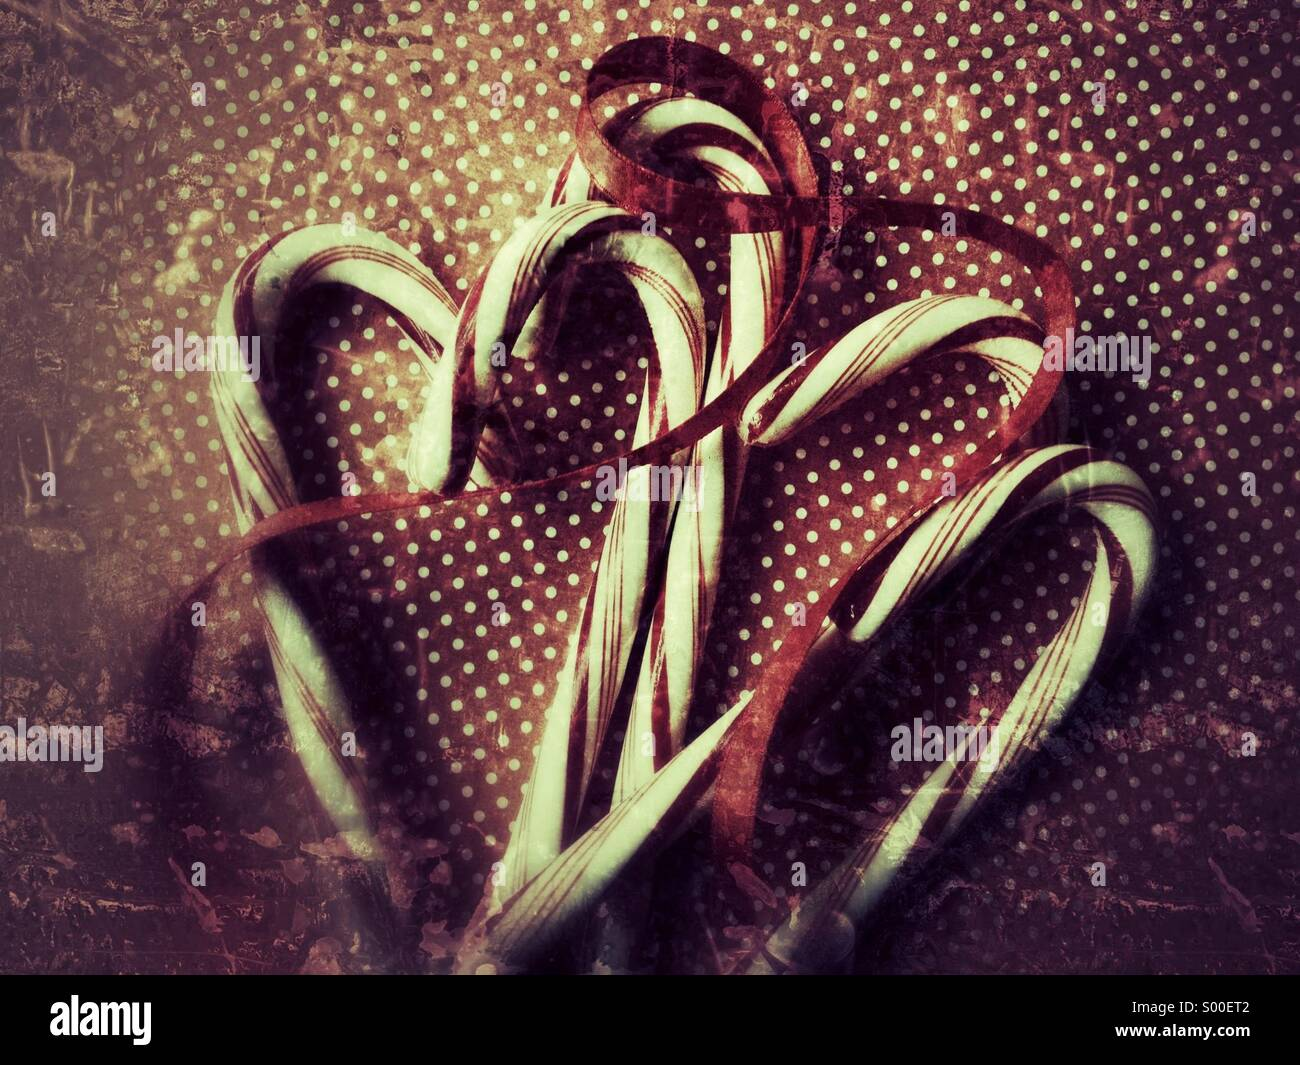 Grunge candy canes Photo Stock